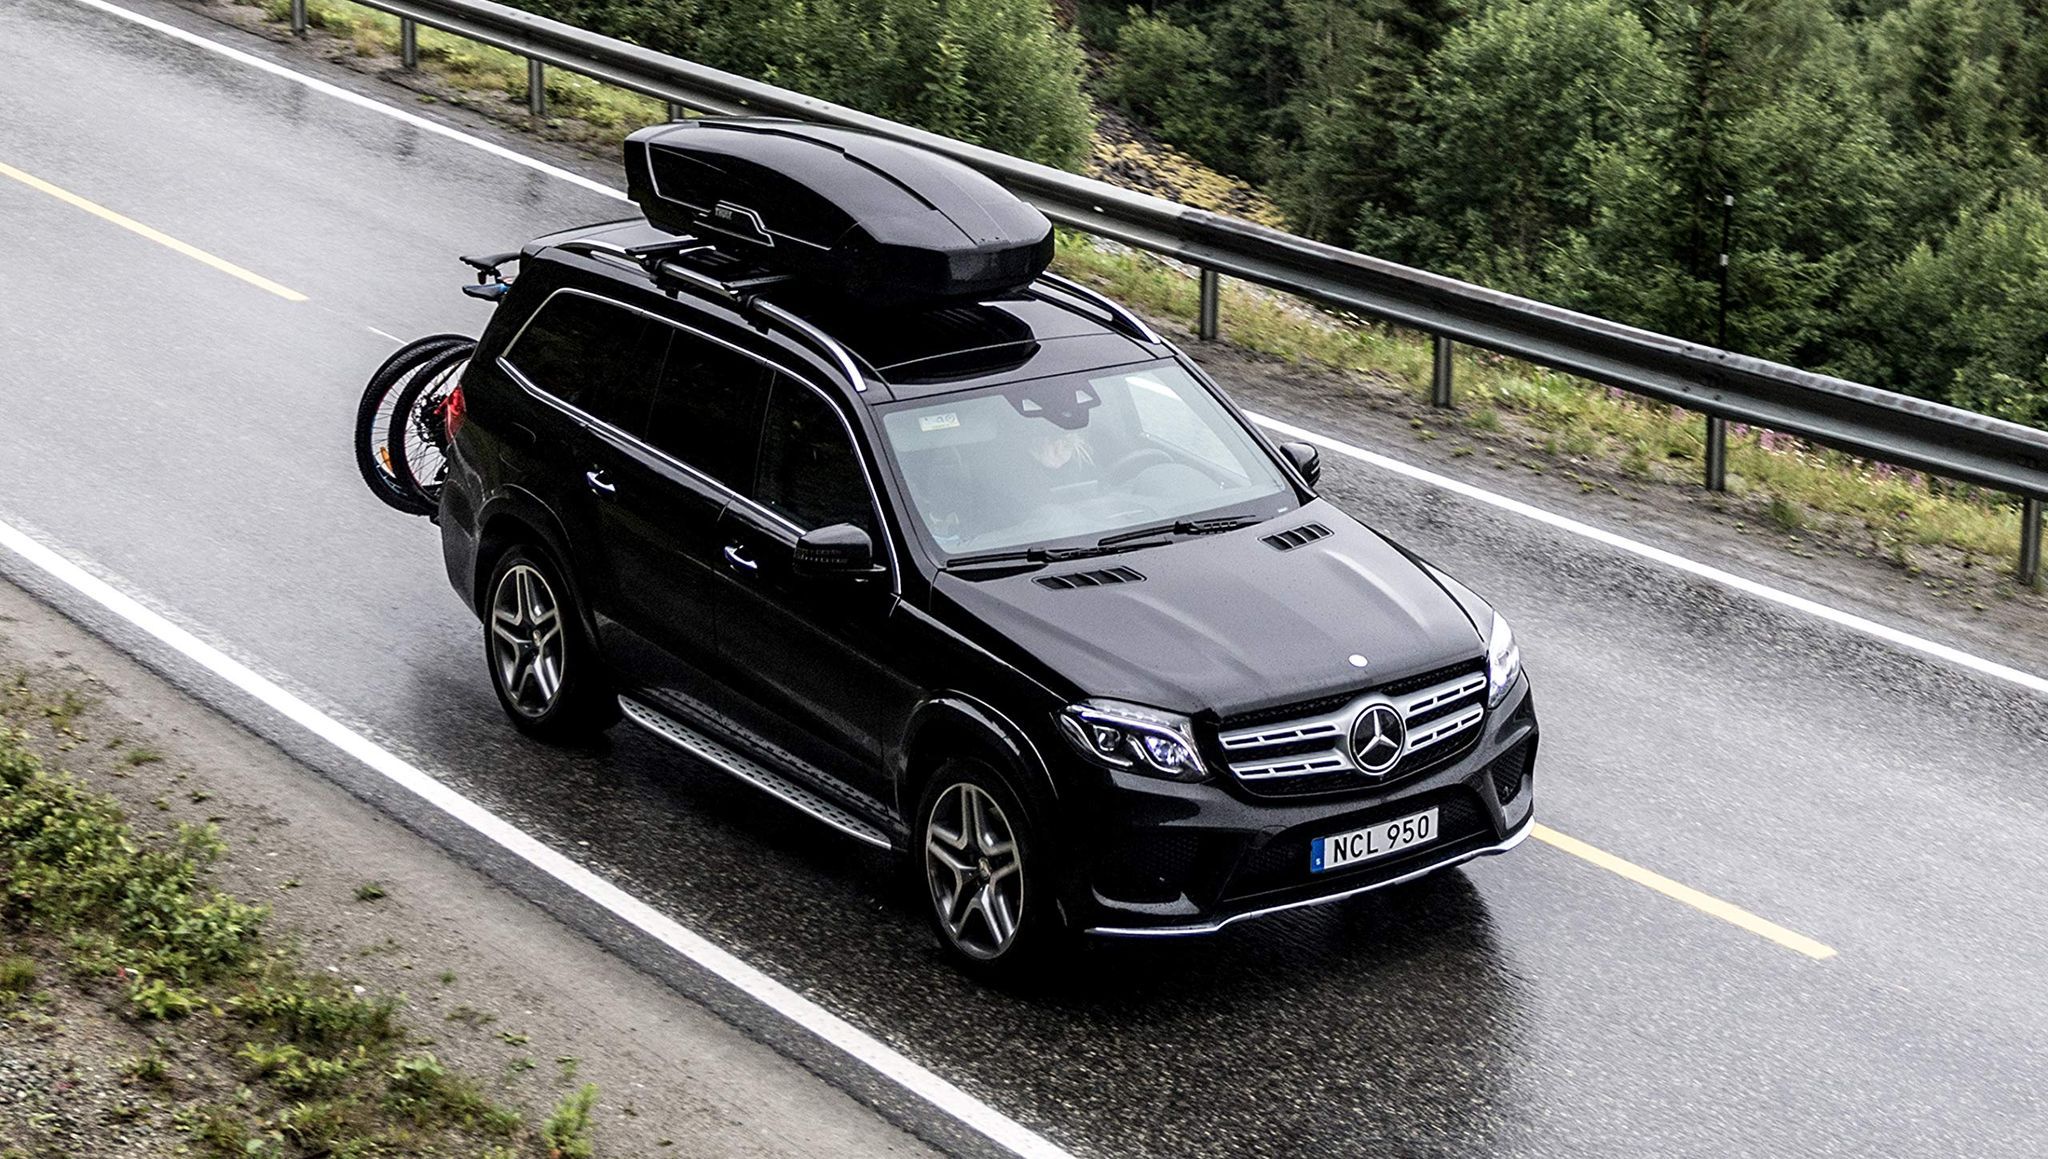 7 Best Rooftop Cargo Carriers